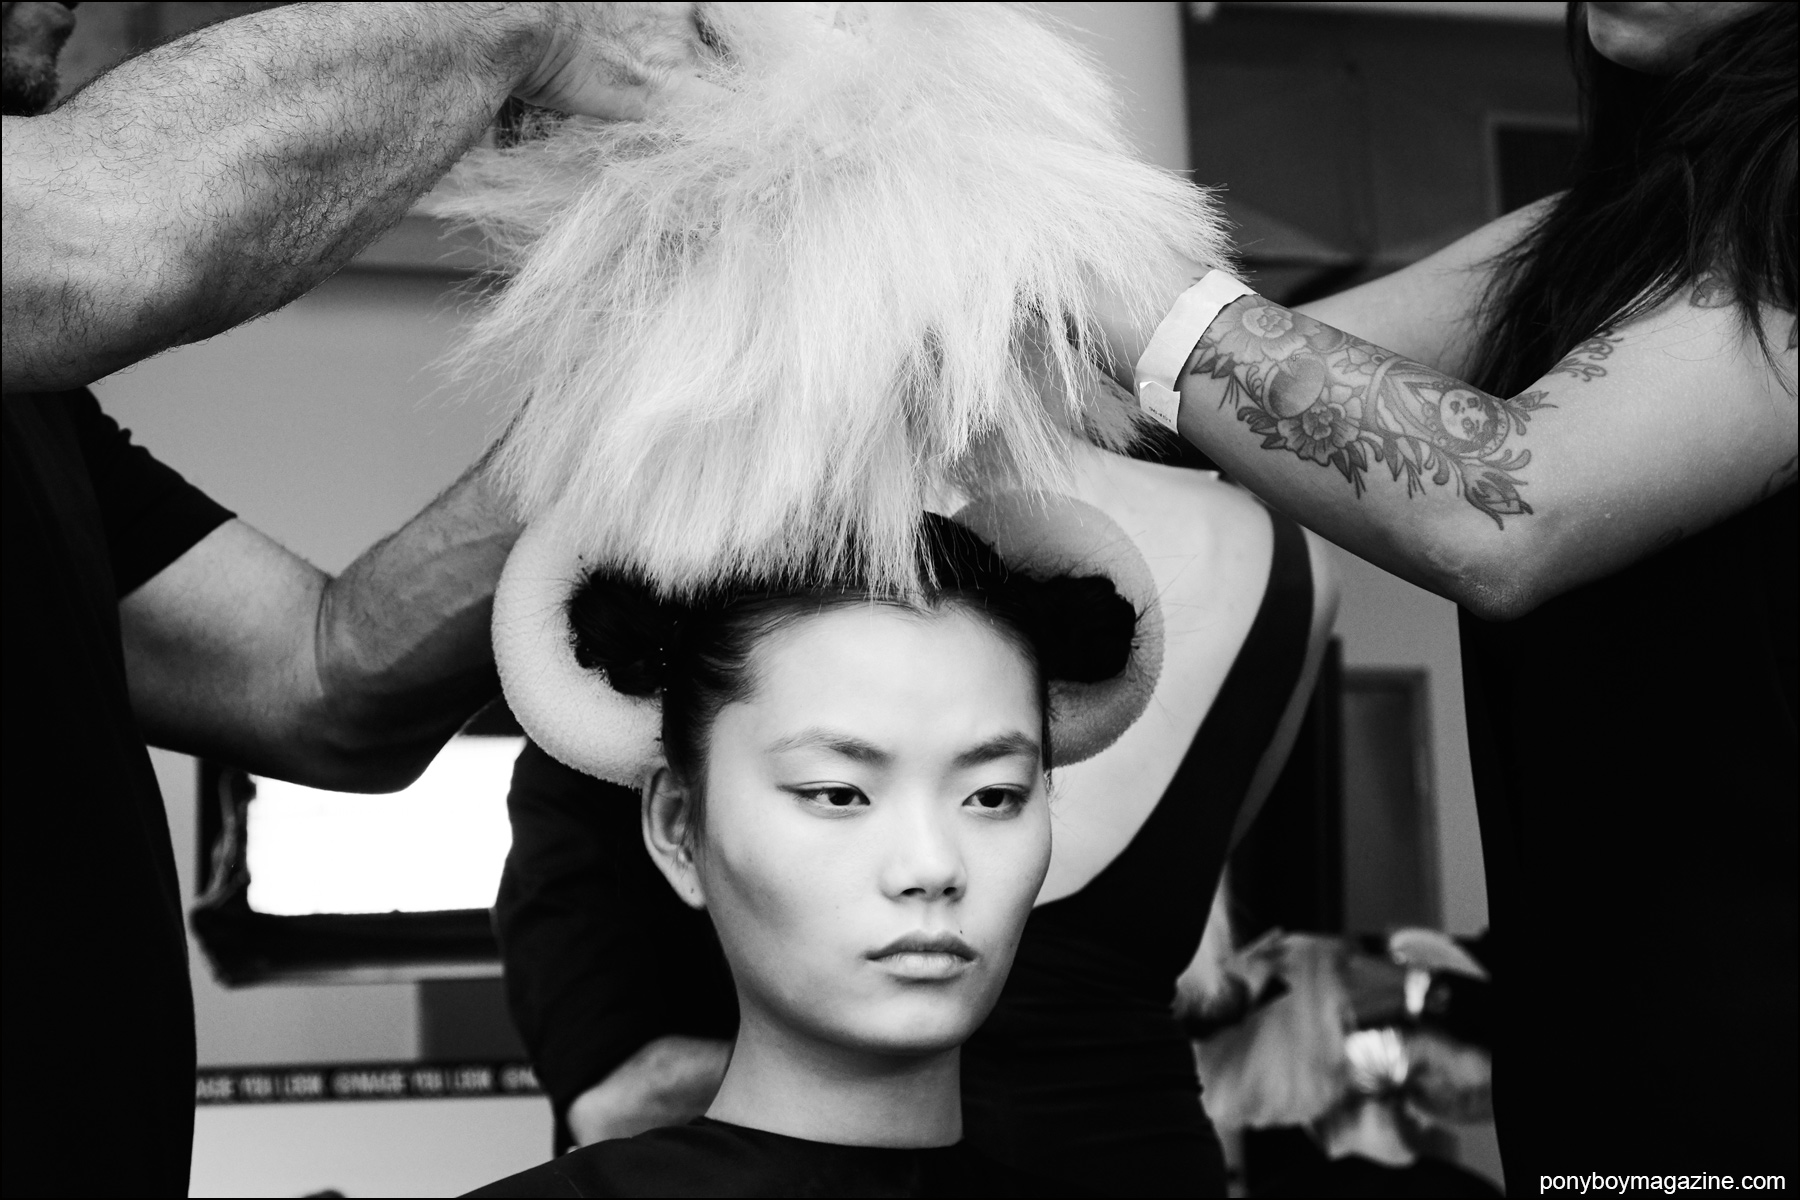 A model gets her wig placed backstage at the Blonds S/S16. Photograph by Alexander Thompson for Ponyboy magazine NY.